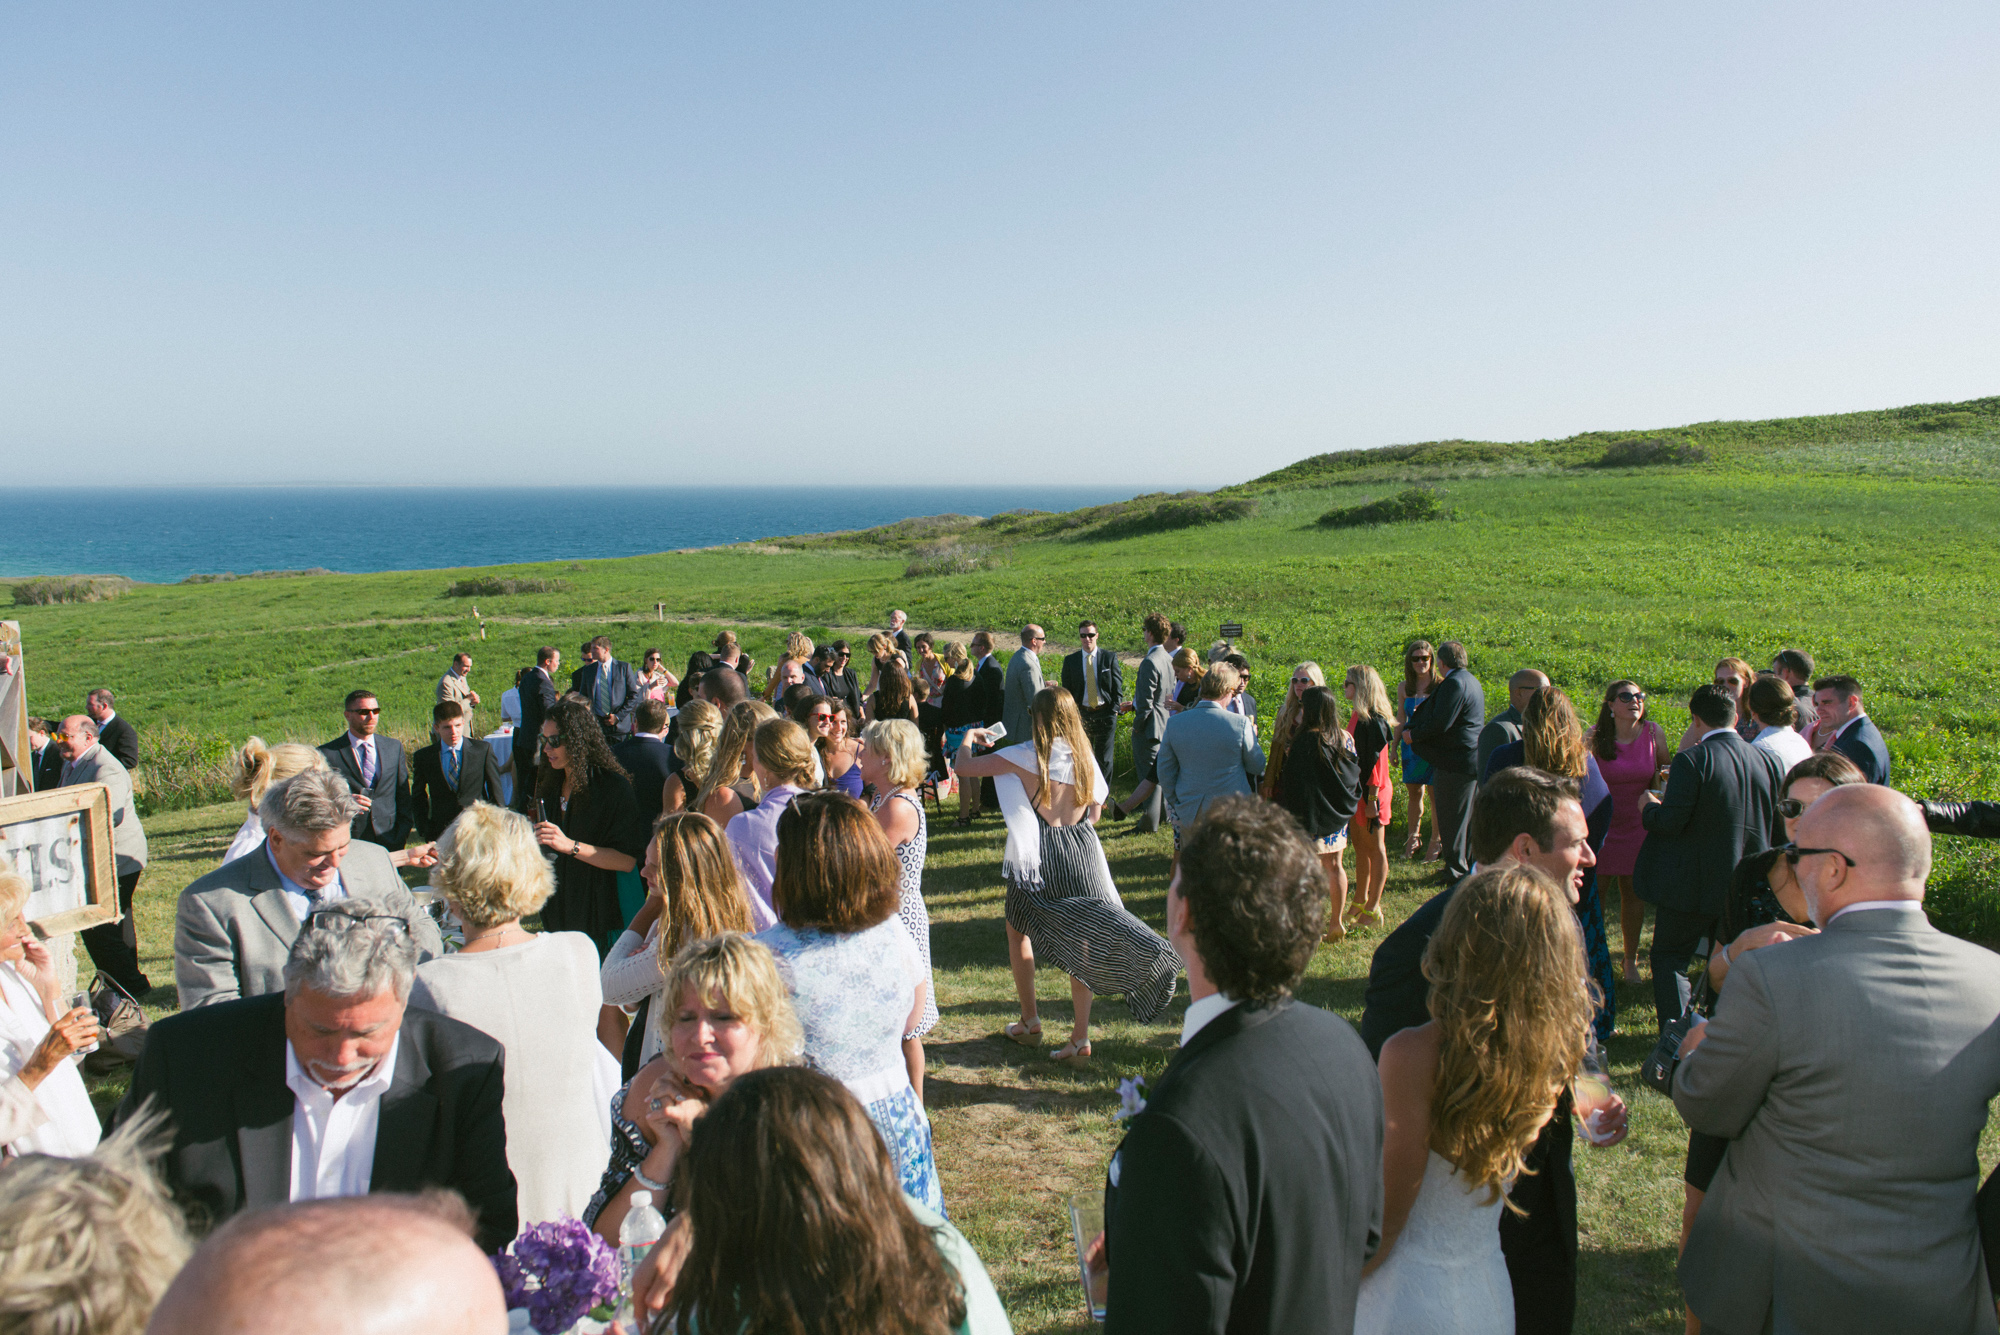 A view of the field and ocean from the Vanderhoop Homestead photo by David Welch Photography